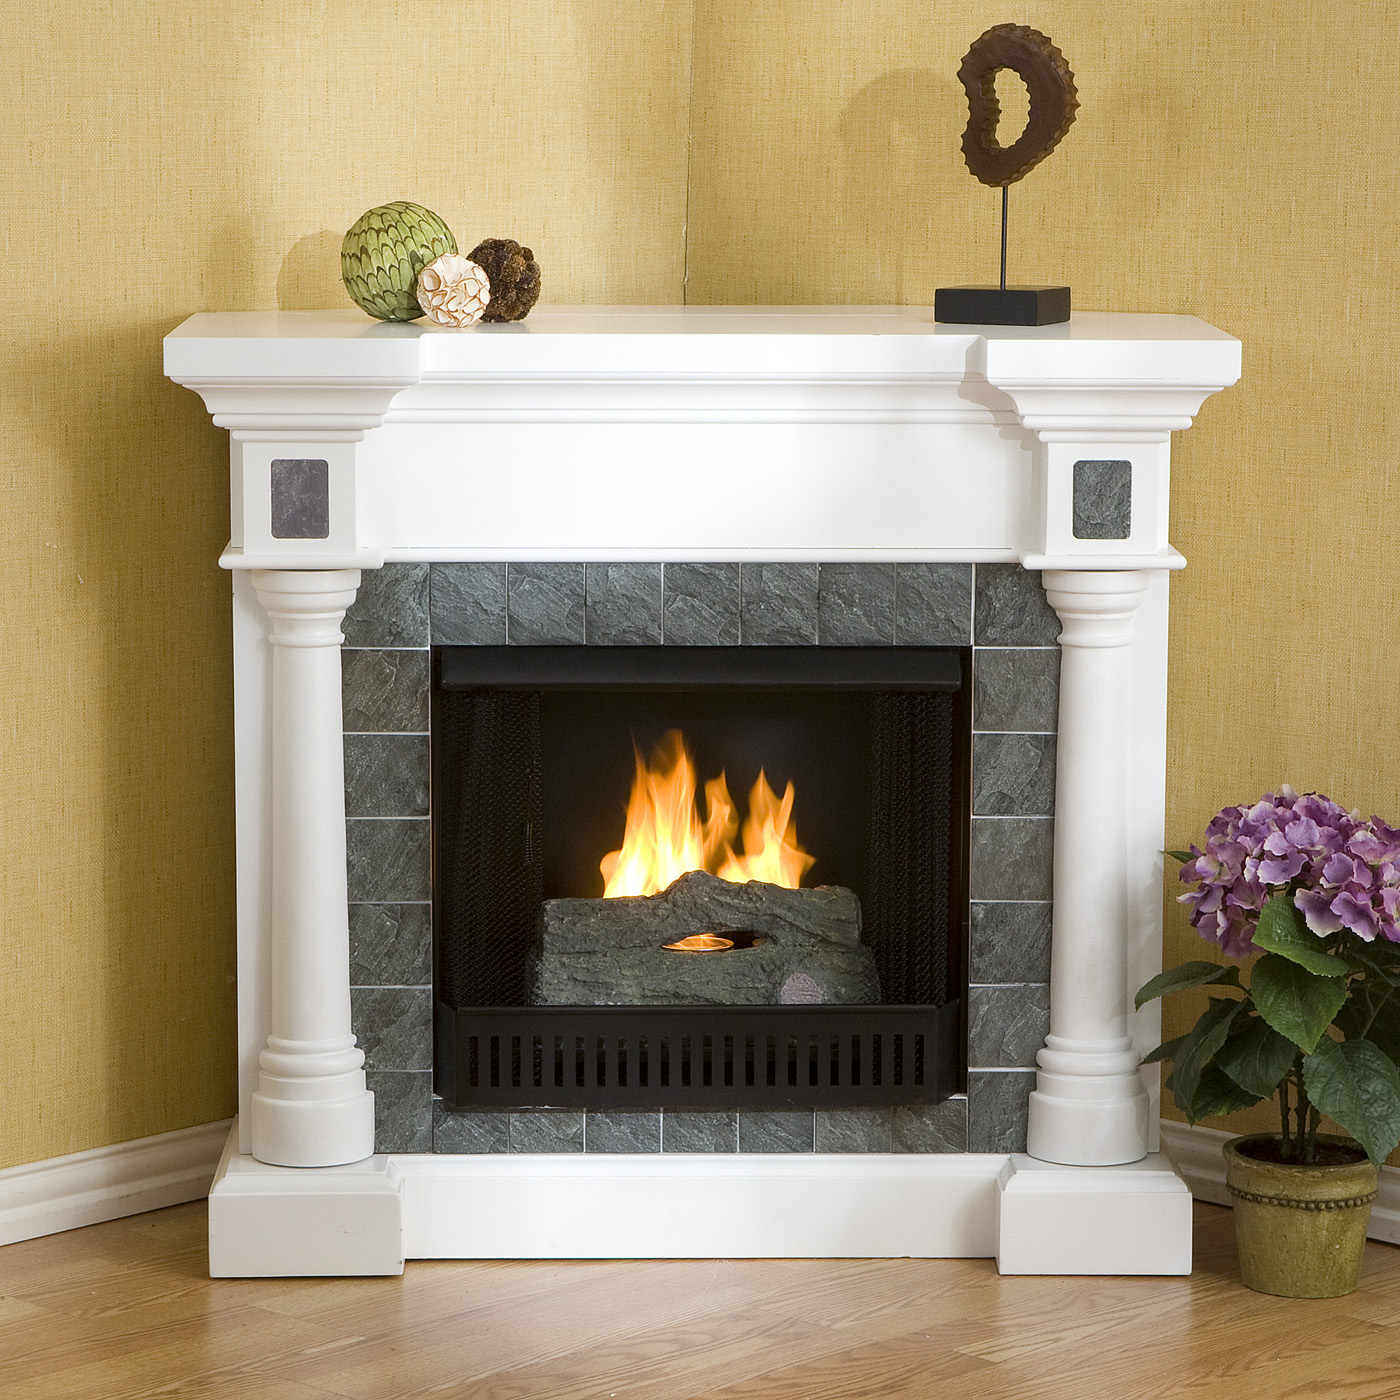 GAS CORNER FIREPLACE MANTELS – Fireplaces